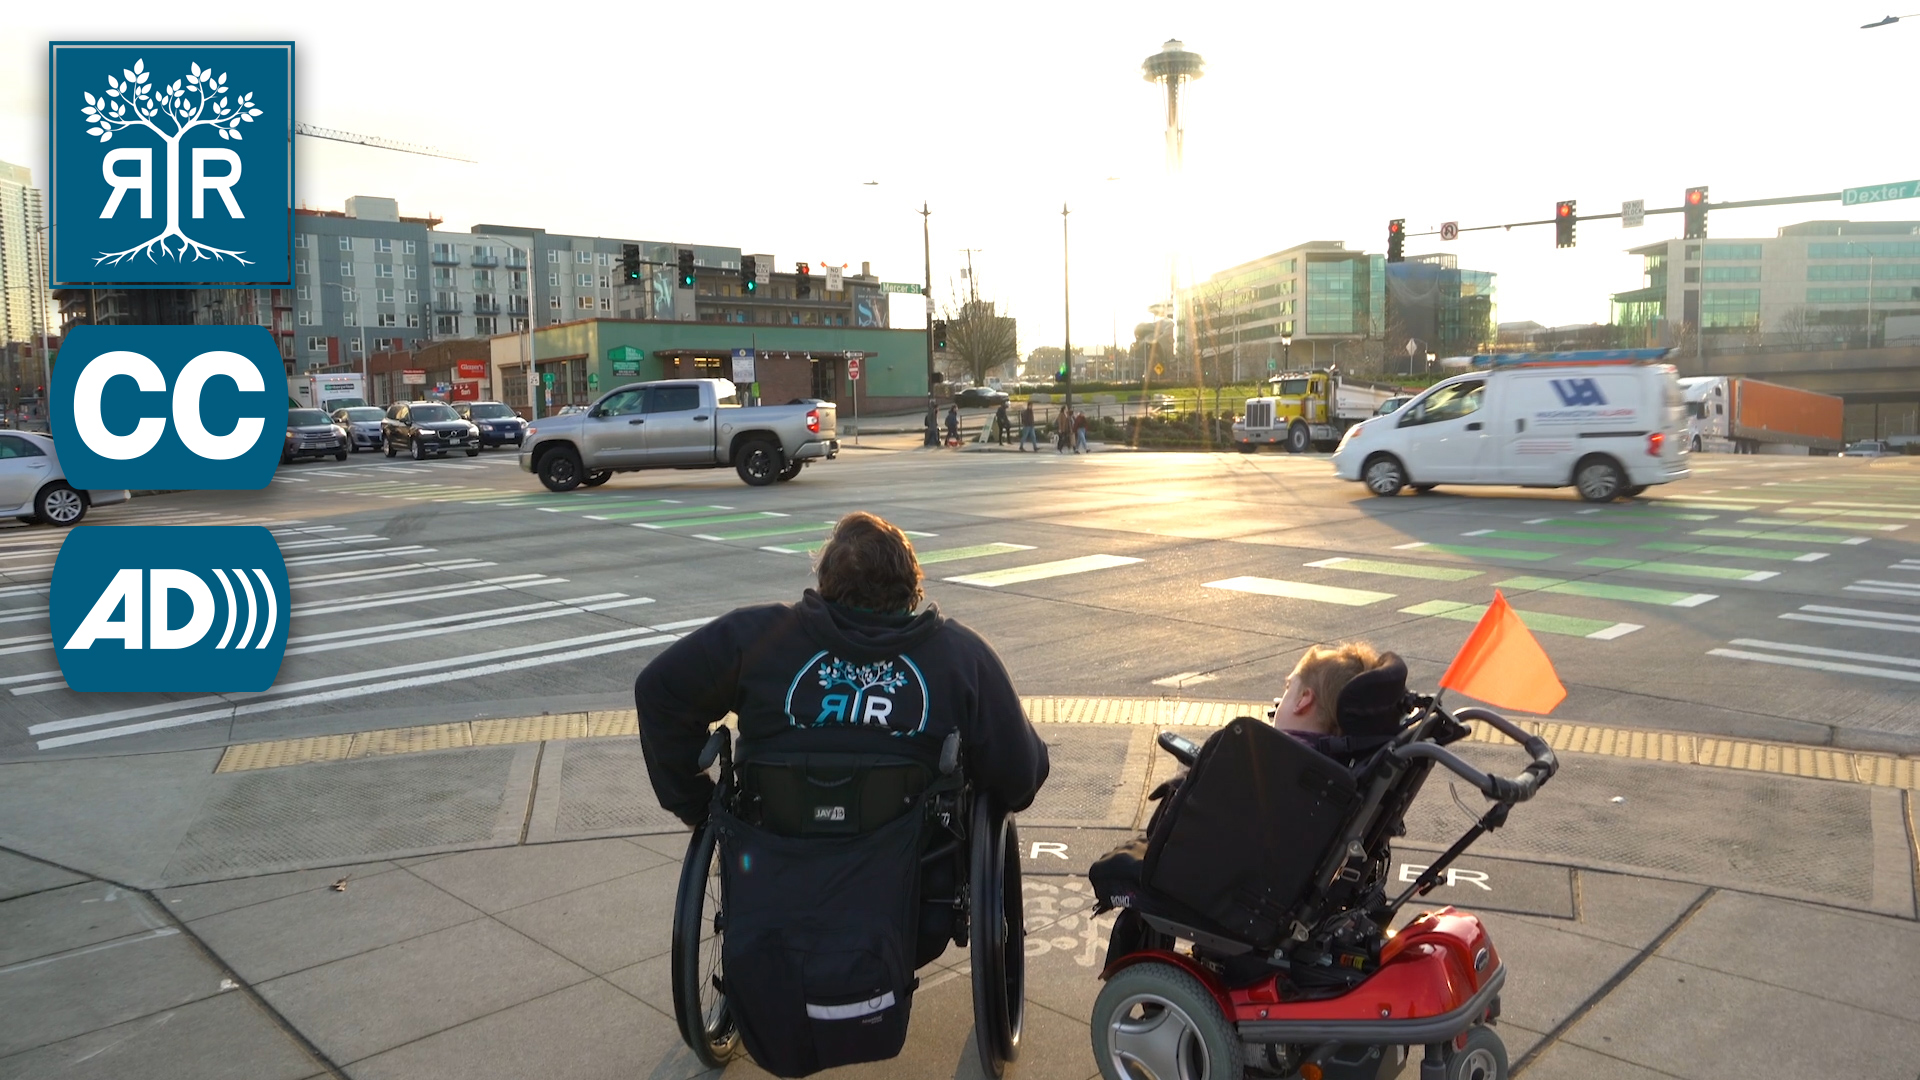 Vanessa and Clark sit in their wheelchairs on the corner of the intersection of two busy streets. There is a Rooted in Rights icon, a Closed Captioning icon, and an Audio Description icon on the left of the image.